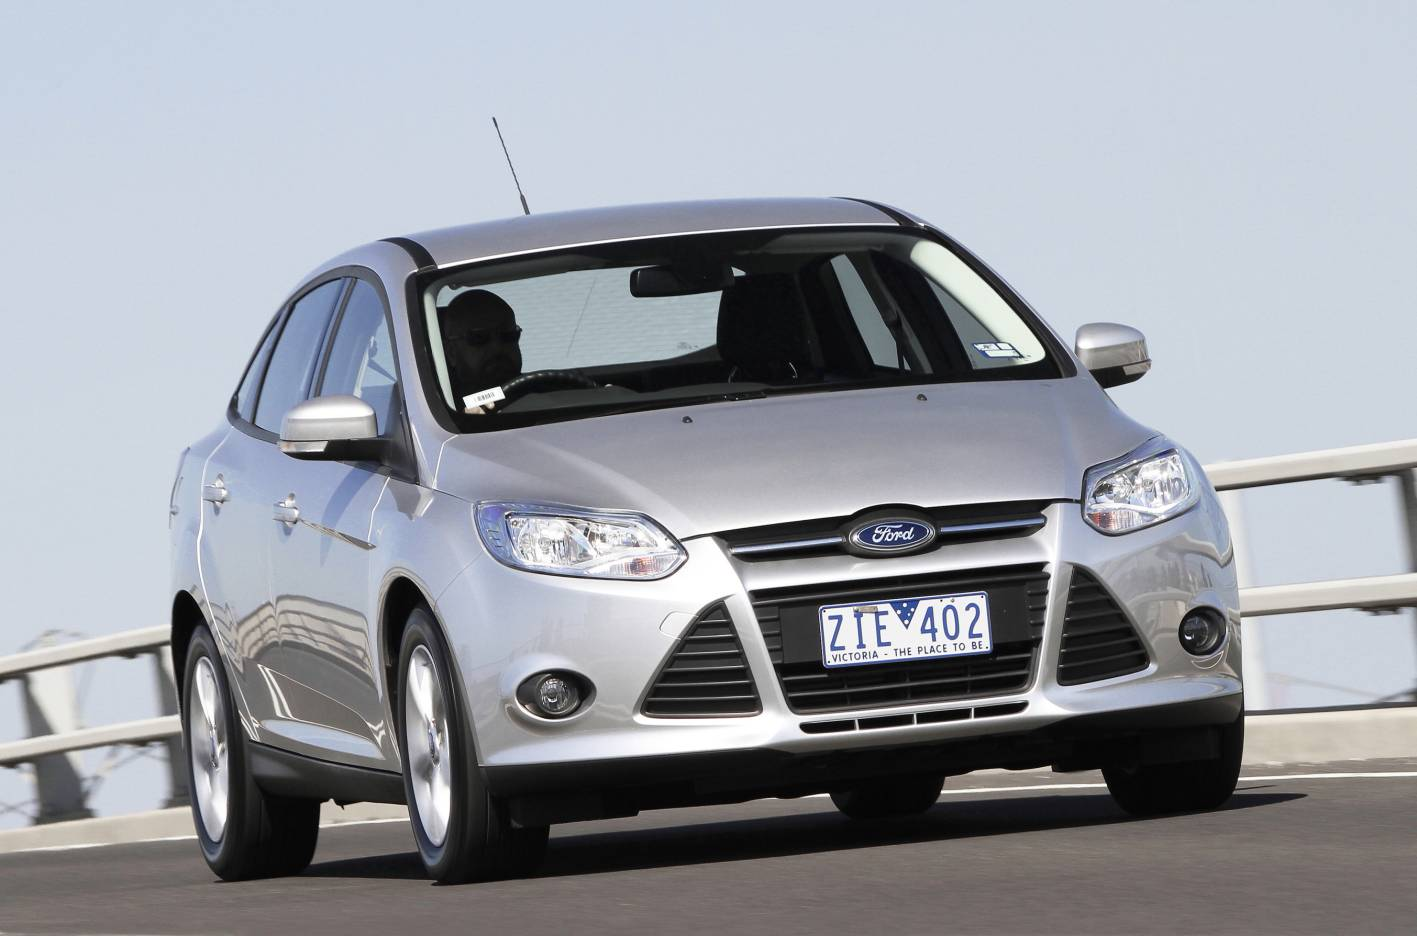 DO NOT BUY THIS CAR: Ford Focus transmission problems make this vehicle one of Australia's great contemporary lemons - and this fact casts real doubt on the advisability of buying ANY Ford vehicle.